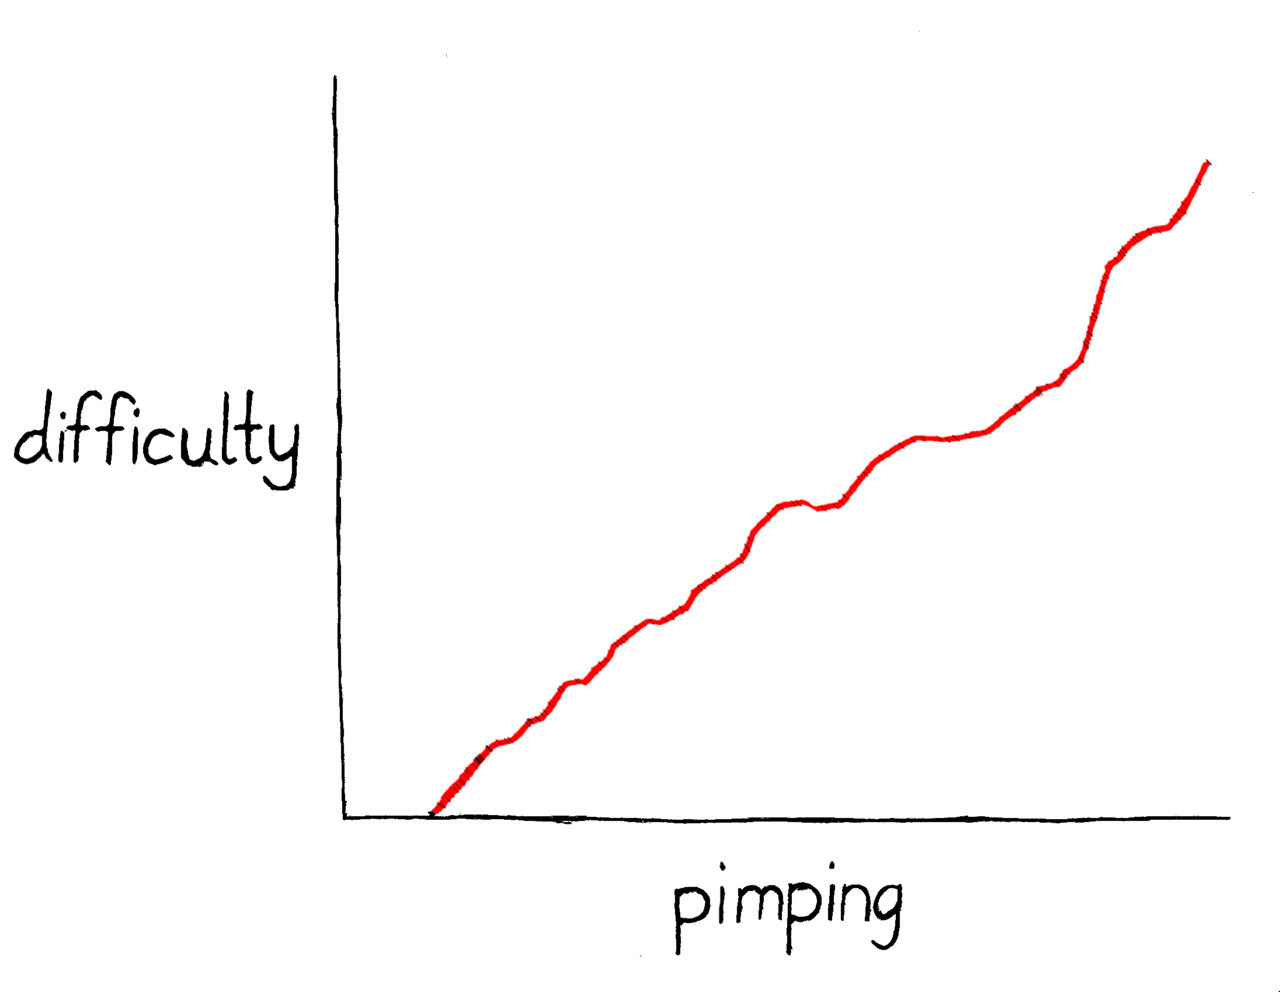 This line graph shows that pimping is indeed not easy.